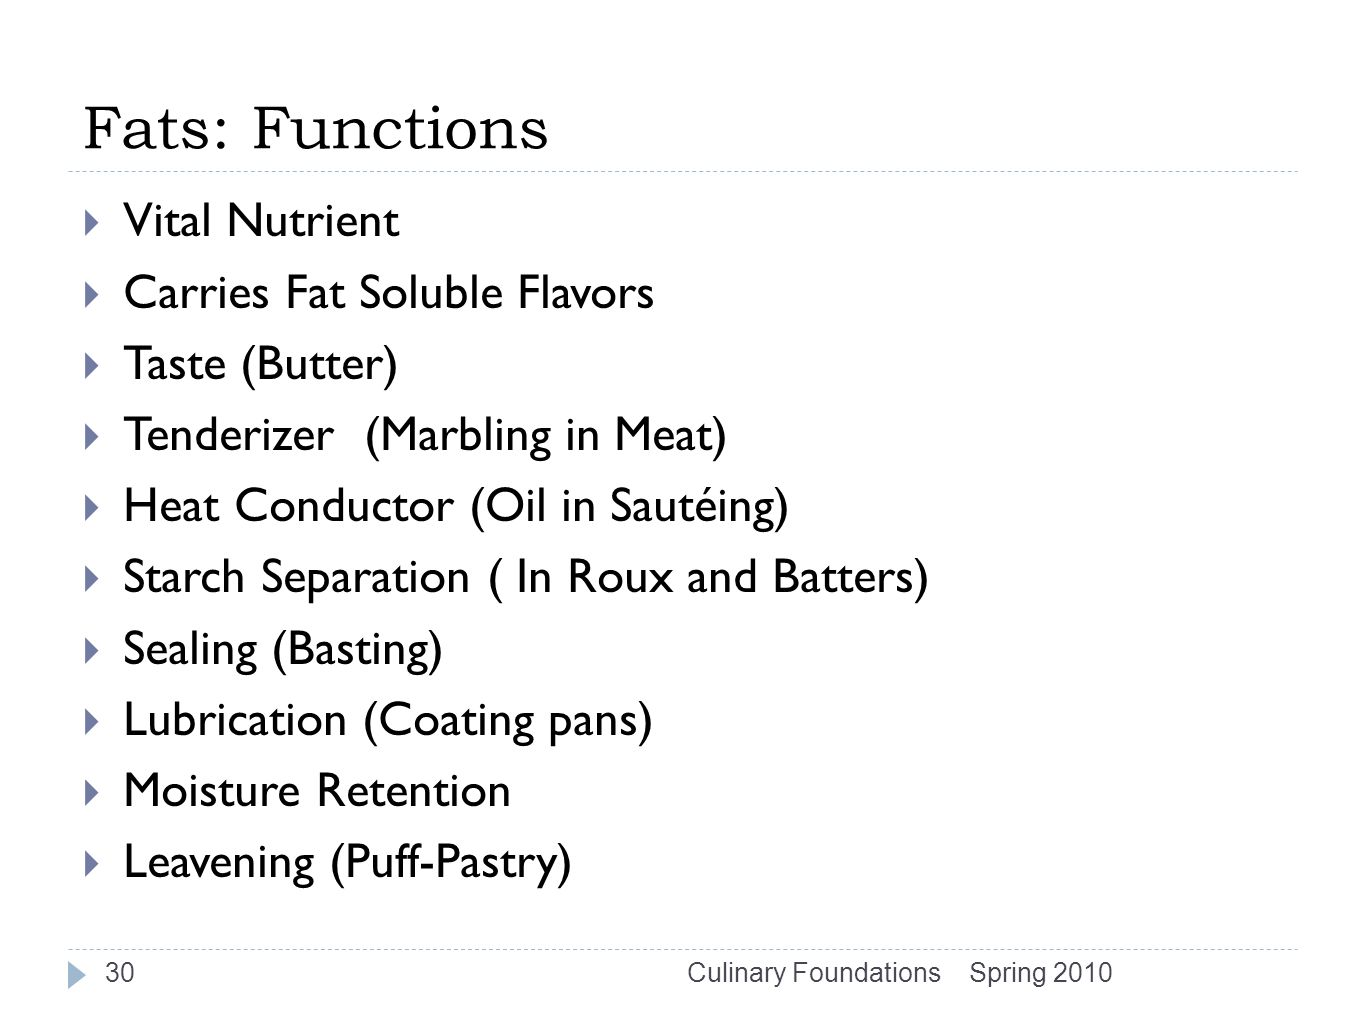 Fats: Functions  Vital Nutrient  Carries Fat Soluble Flavors  Taste (Butter)  Tenderizer (Marbling in Meat)  Heat Conductor (Oil in Sautéing)  Starch Separation ( In Roux and Batters)  Sealing (Basting)  Lubrication (Coating pans)  Moisture Retention  Leavening (Puff-Pastry) Spring 2010Culinary Foundations30